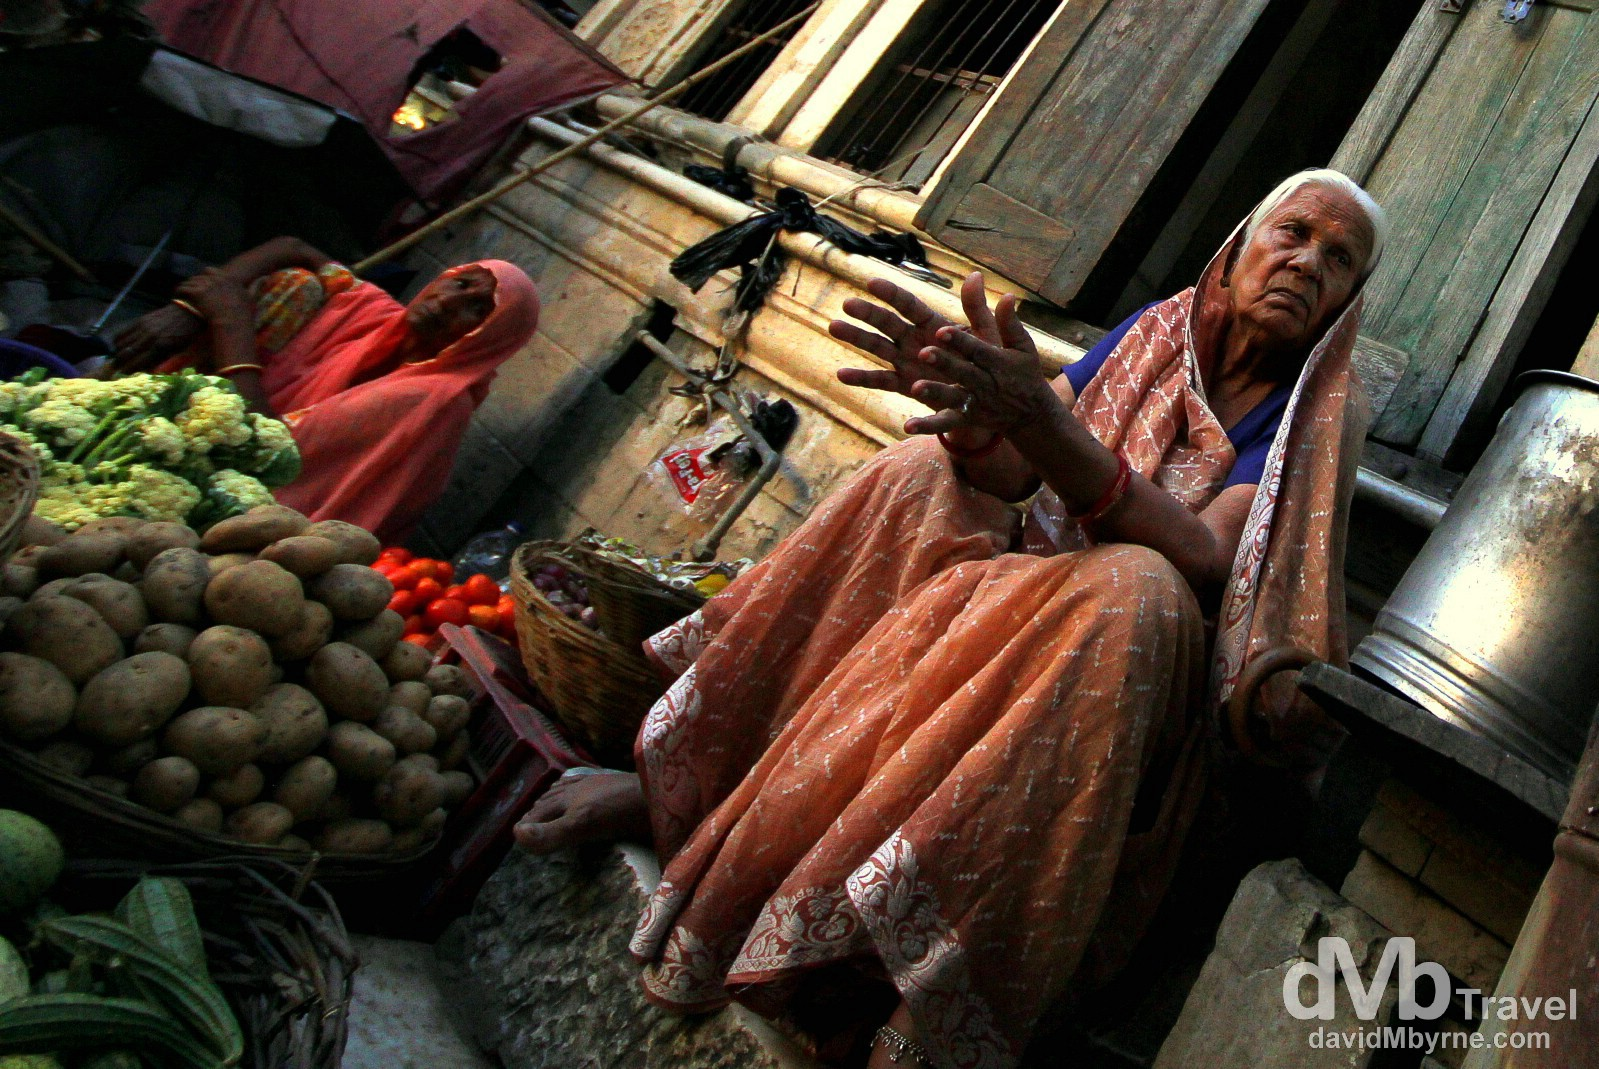 In a market on the streets of Pushkar, Rajasthan, India. October 3rd 2012.